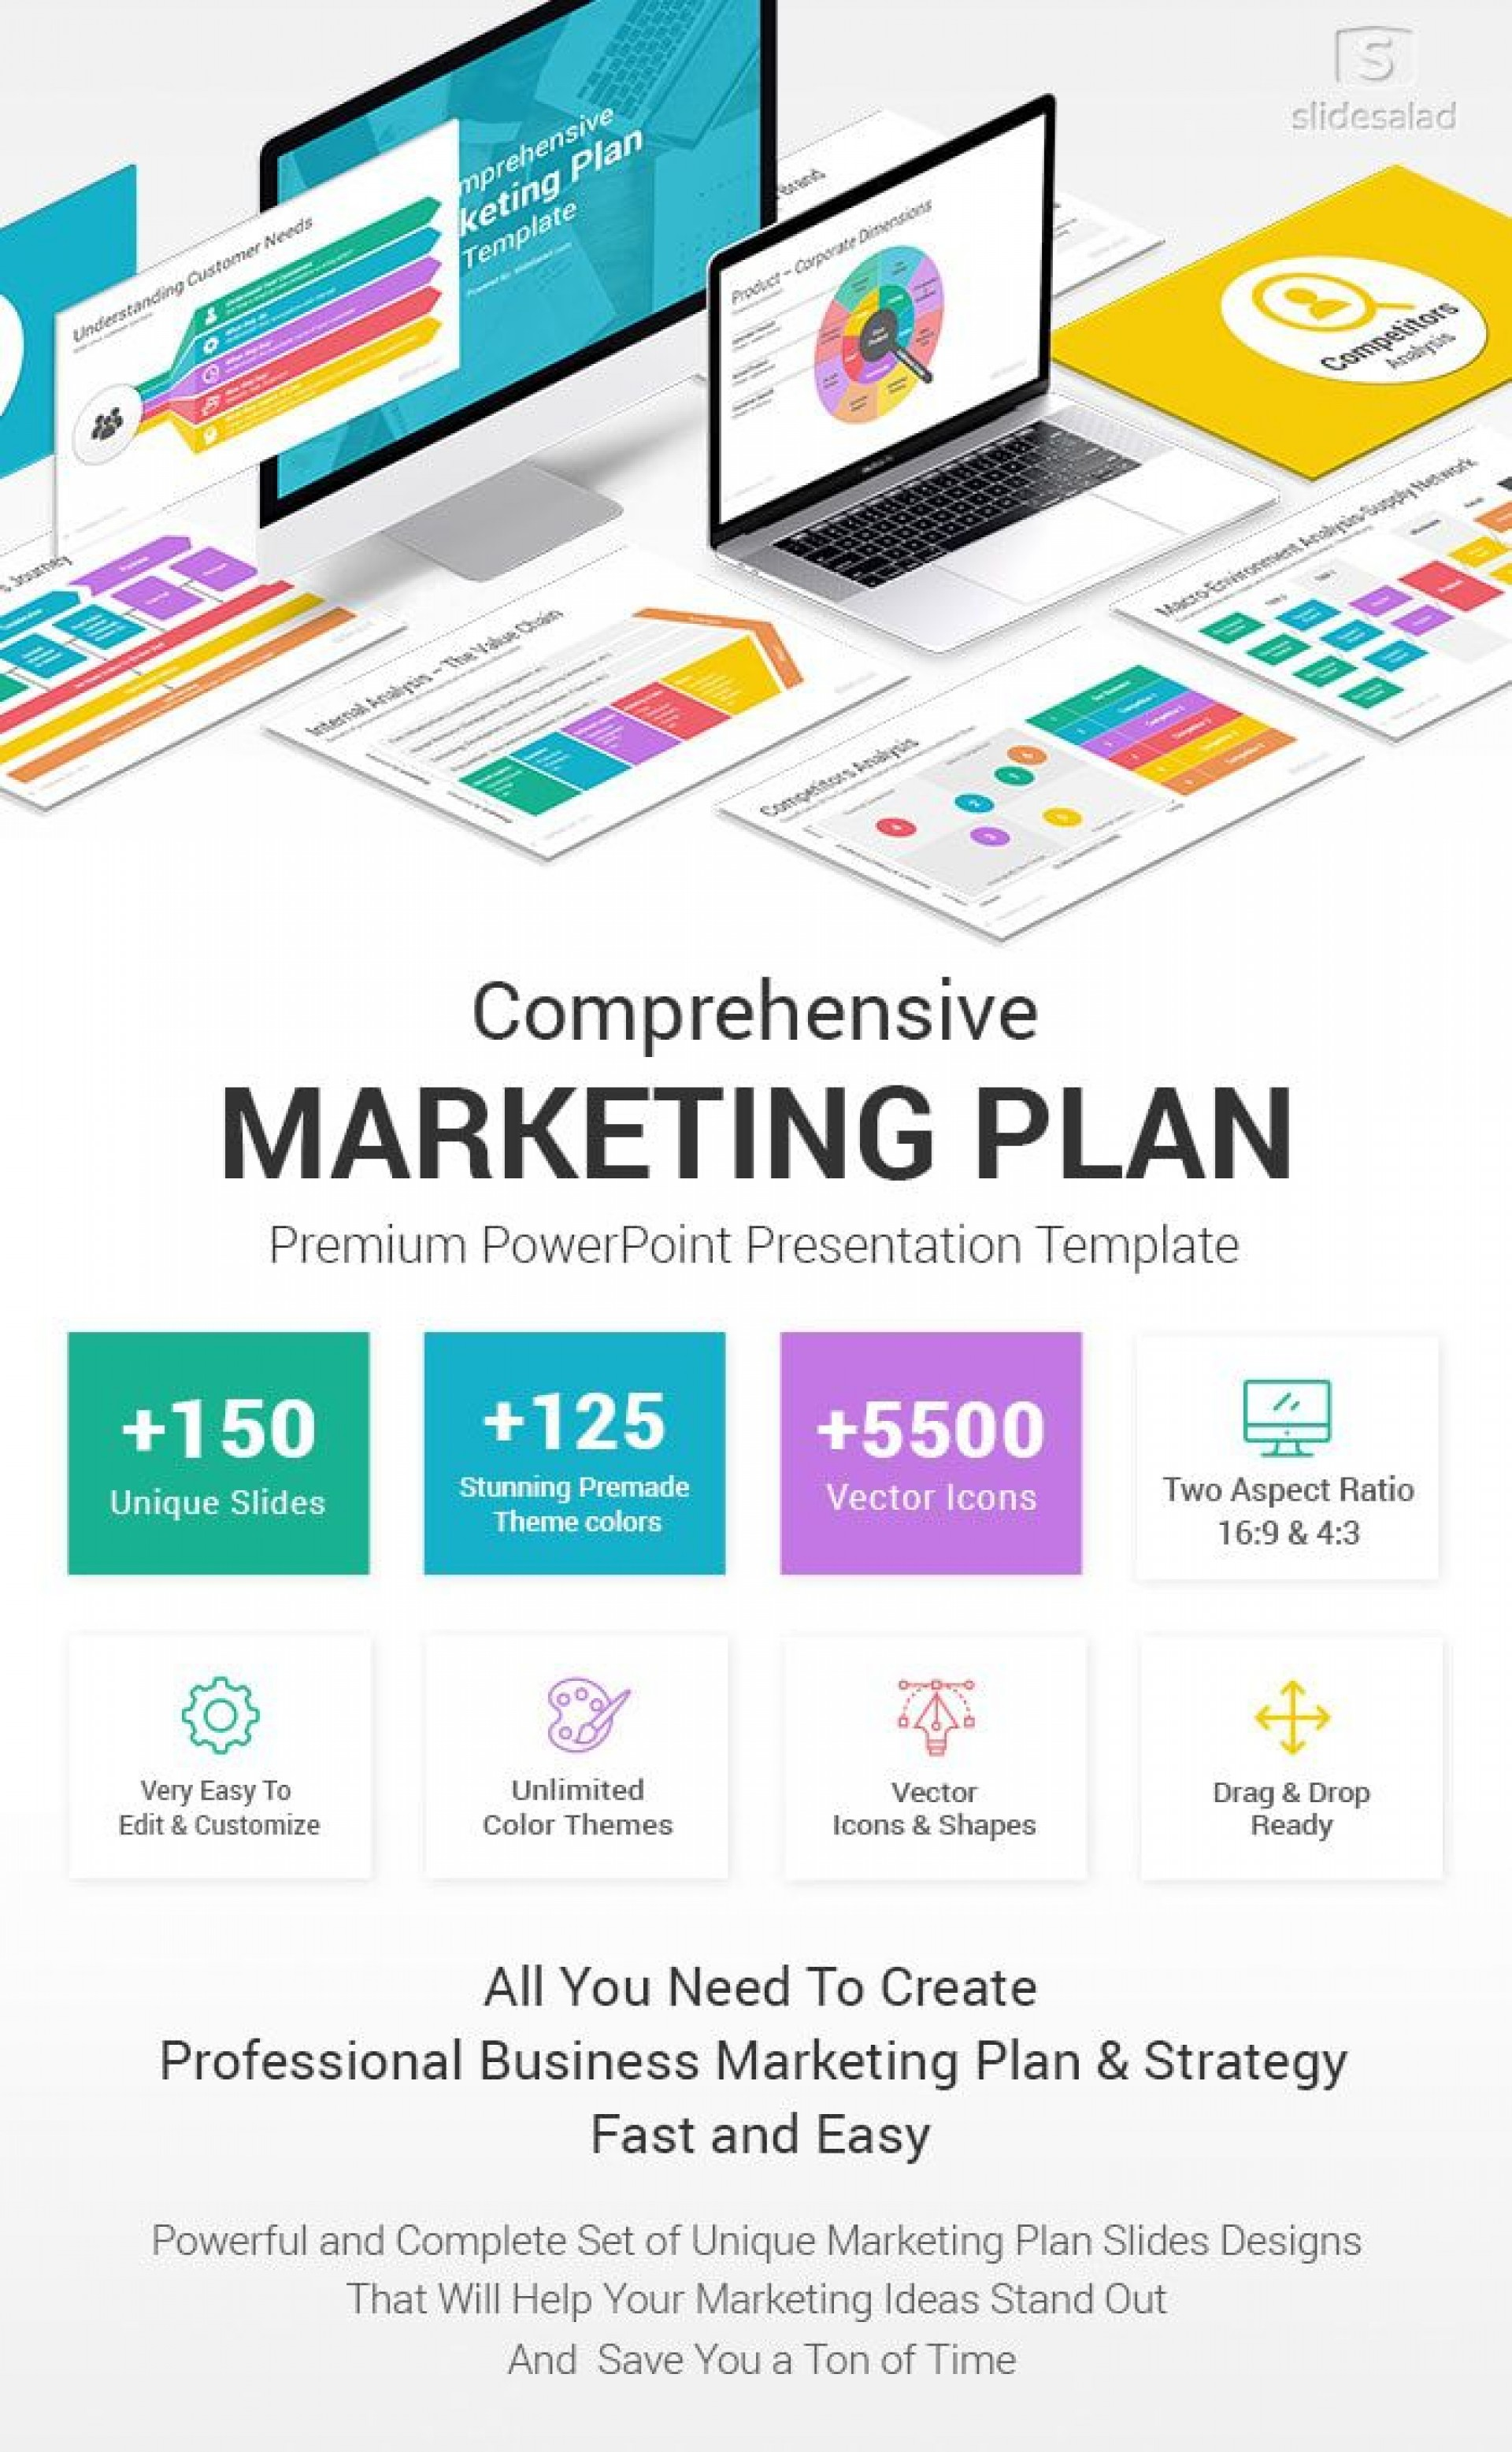 002 Impressive Product Launch Plan Powerpoint Template Free Concept 1920